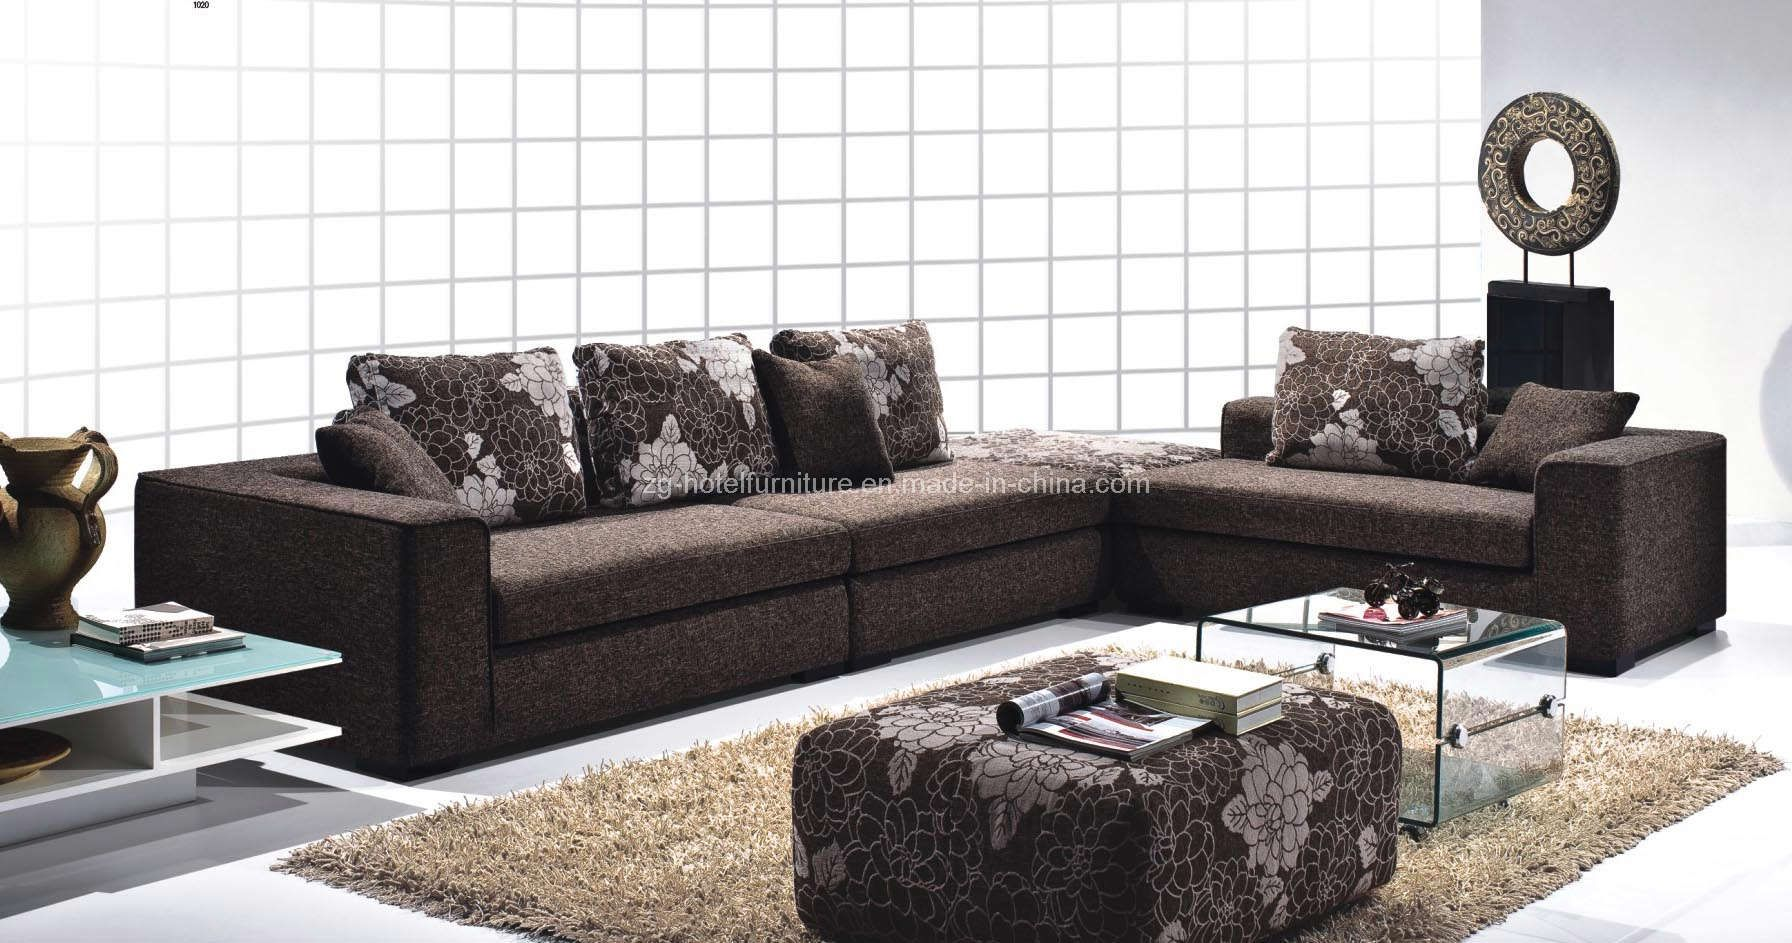 Bdf Neat Modern White Couch For Living Room Sofas